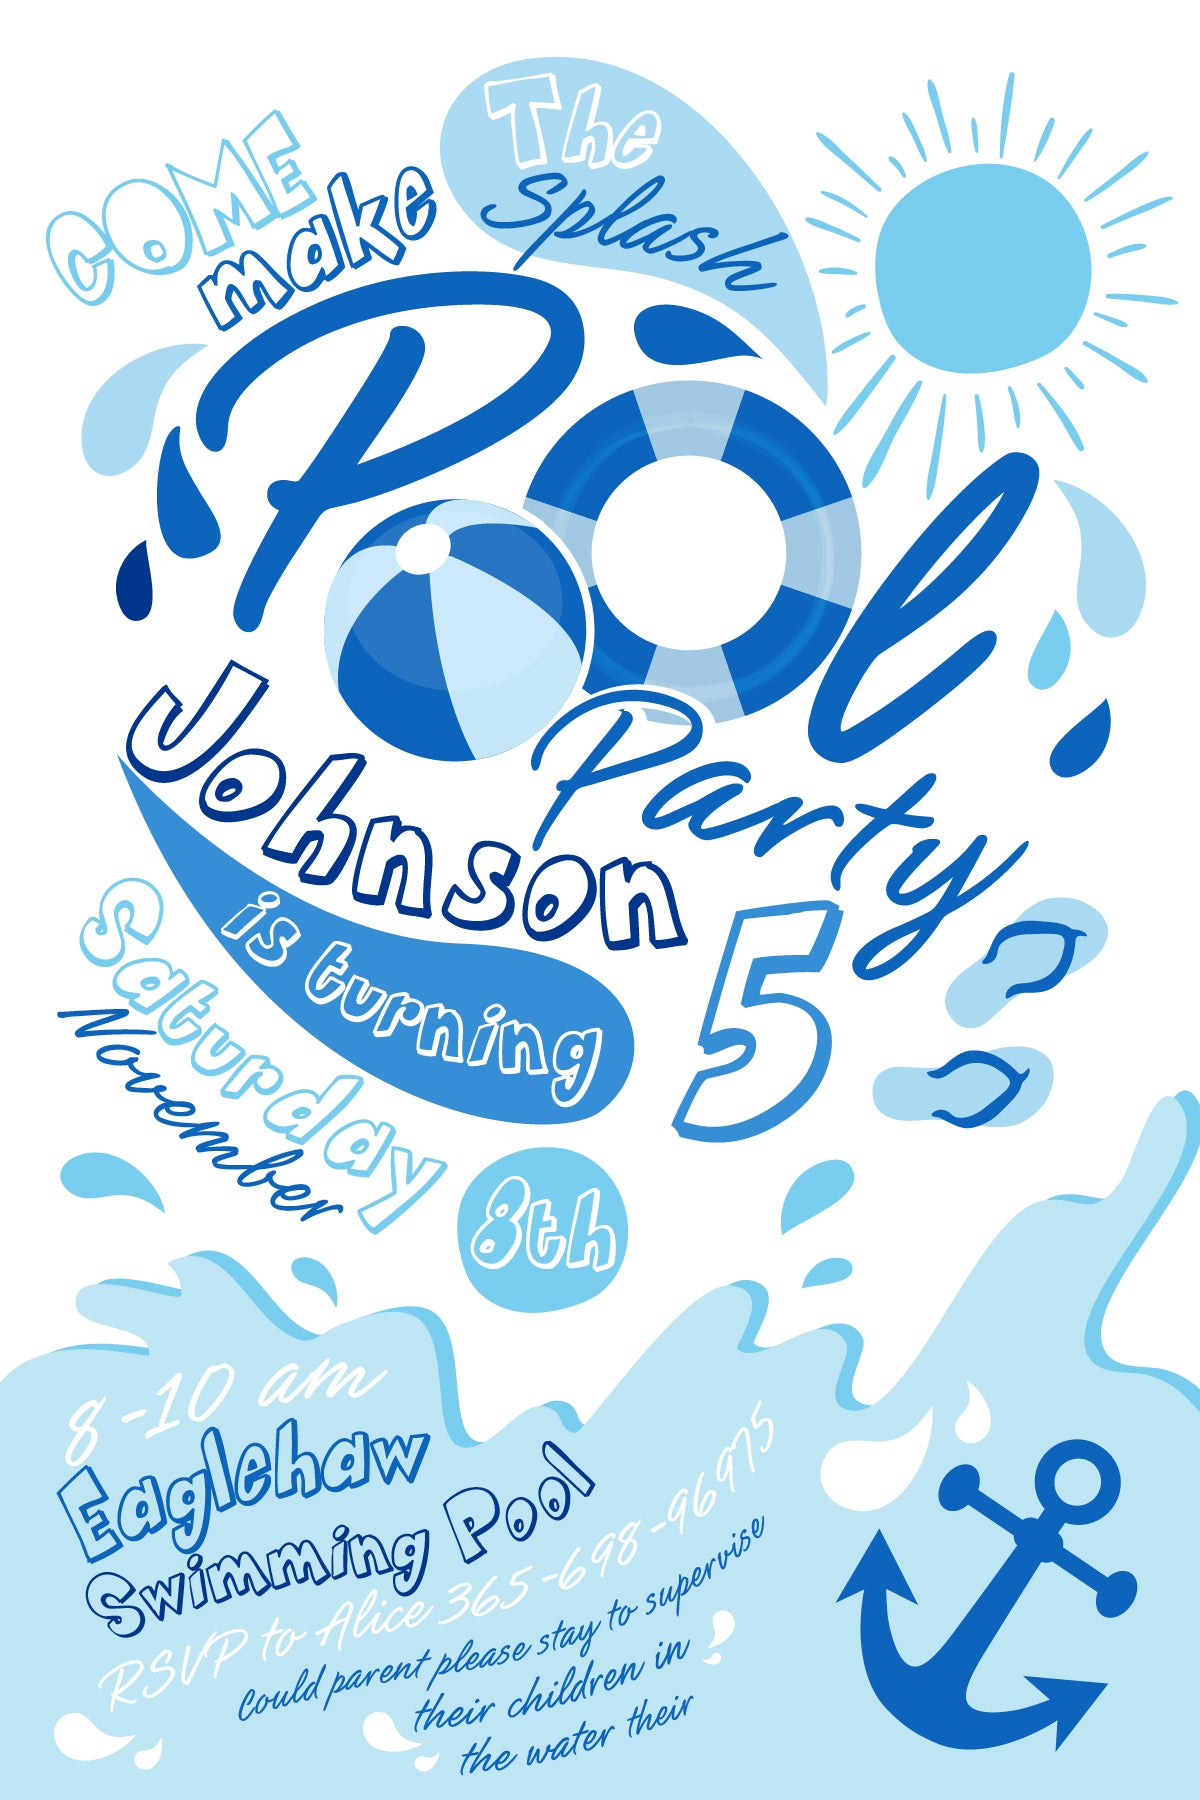 Pool party invitation swimming pool birthday party winter pool pool party invitation swimming pool birthday party winter pool party sugar shebang filmwisefo